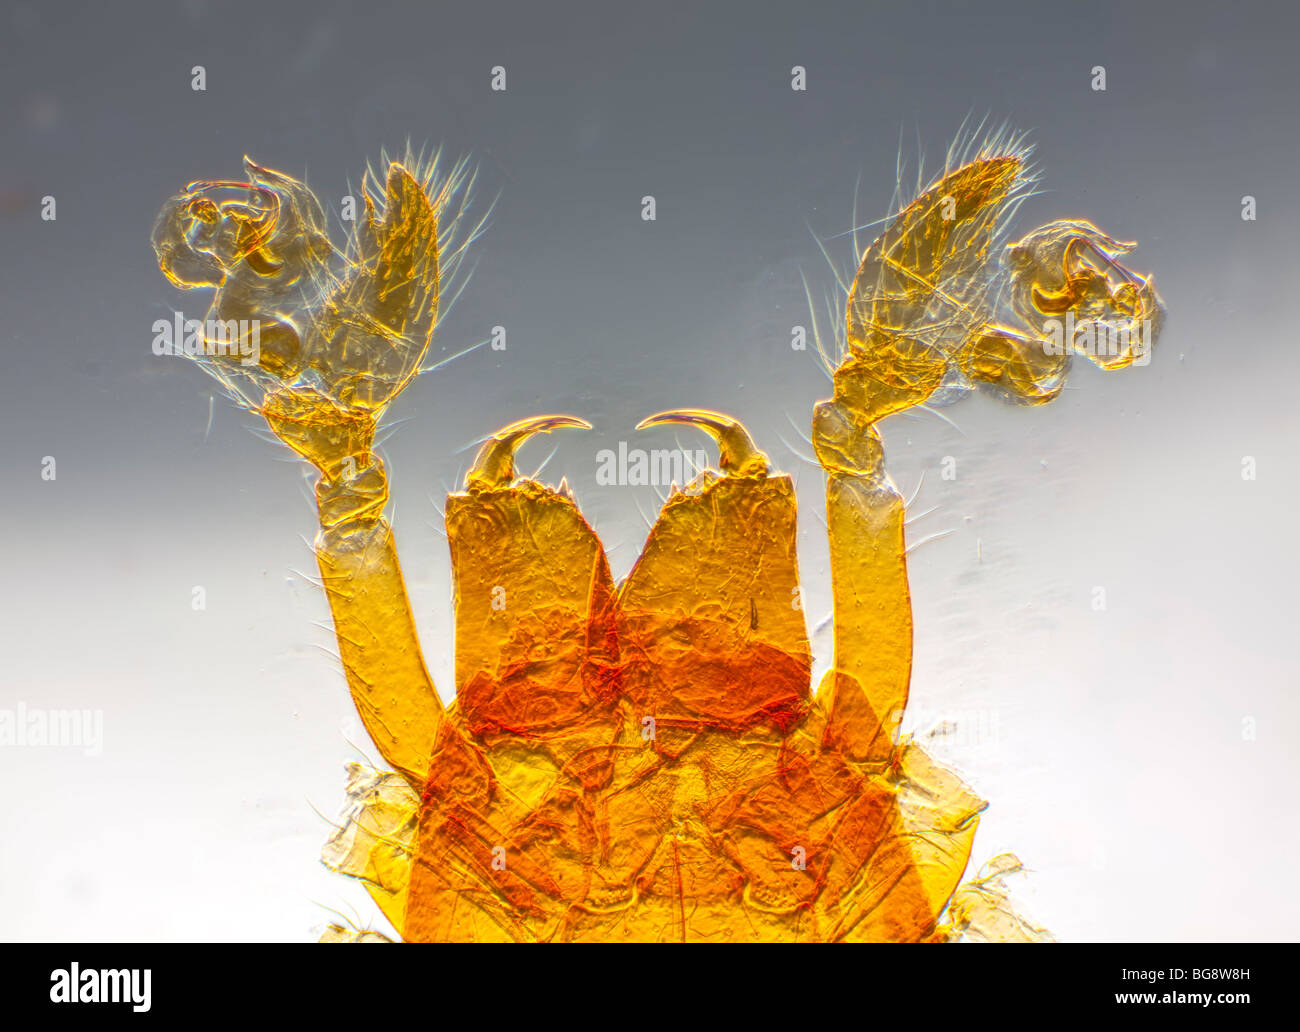 Photomicrograph of spider mouthparts - Stock Image